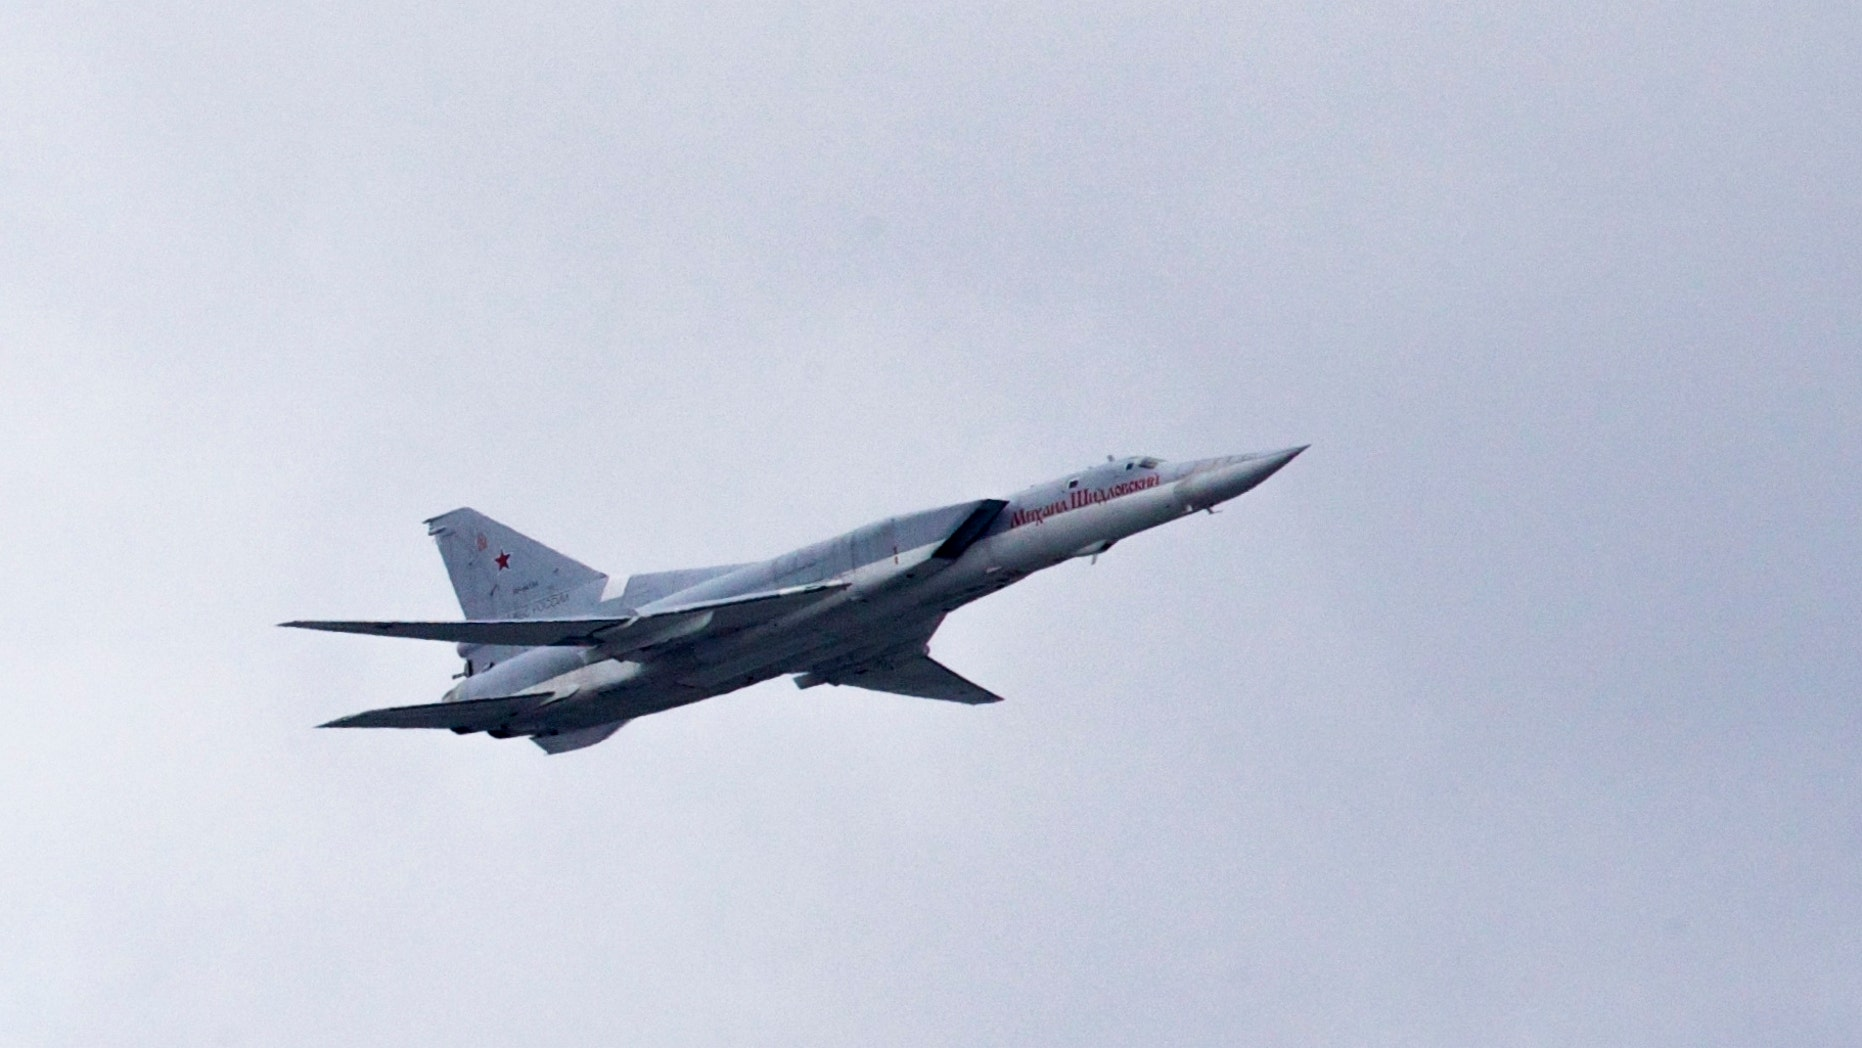 Russian Tu-22M3 heavy bomber crash-lands in Arctic, killing two